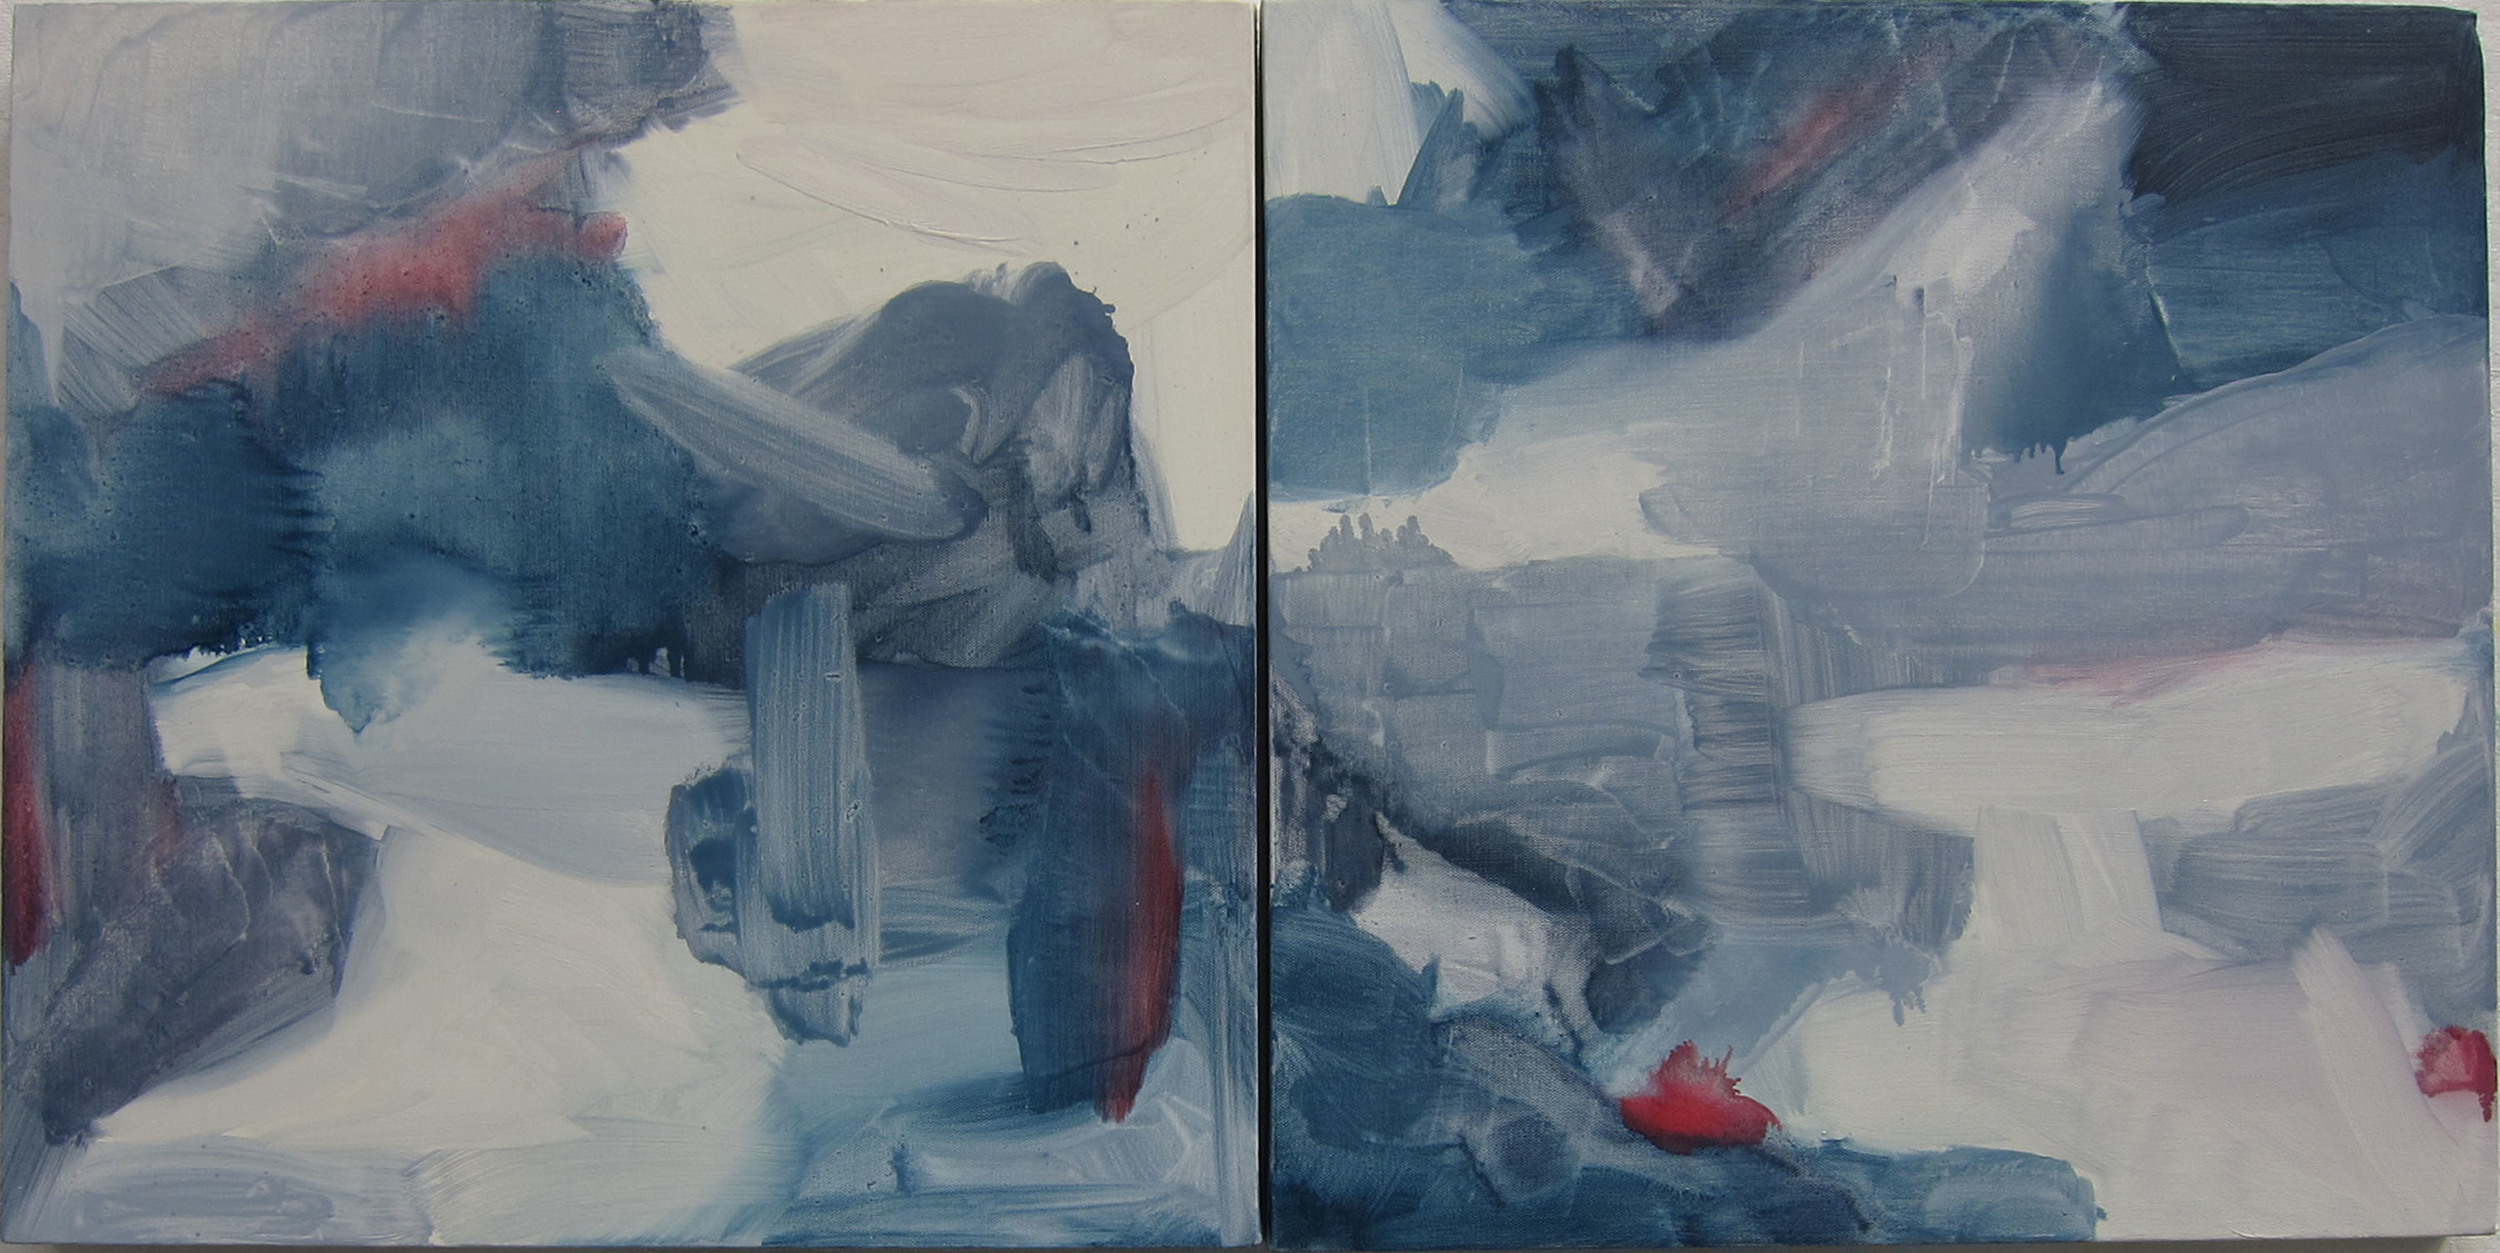 Montauk Grey Days, 2013, oil on canvas, 18 x 18 inches each.